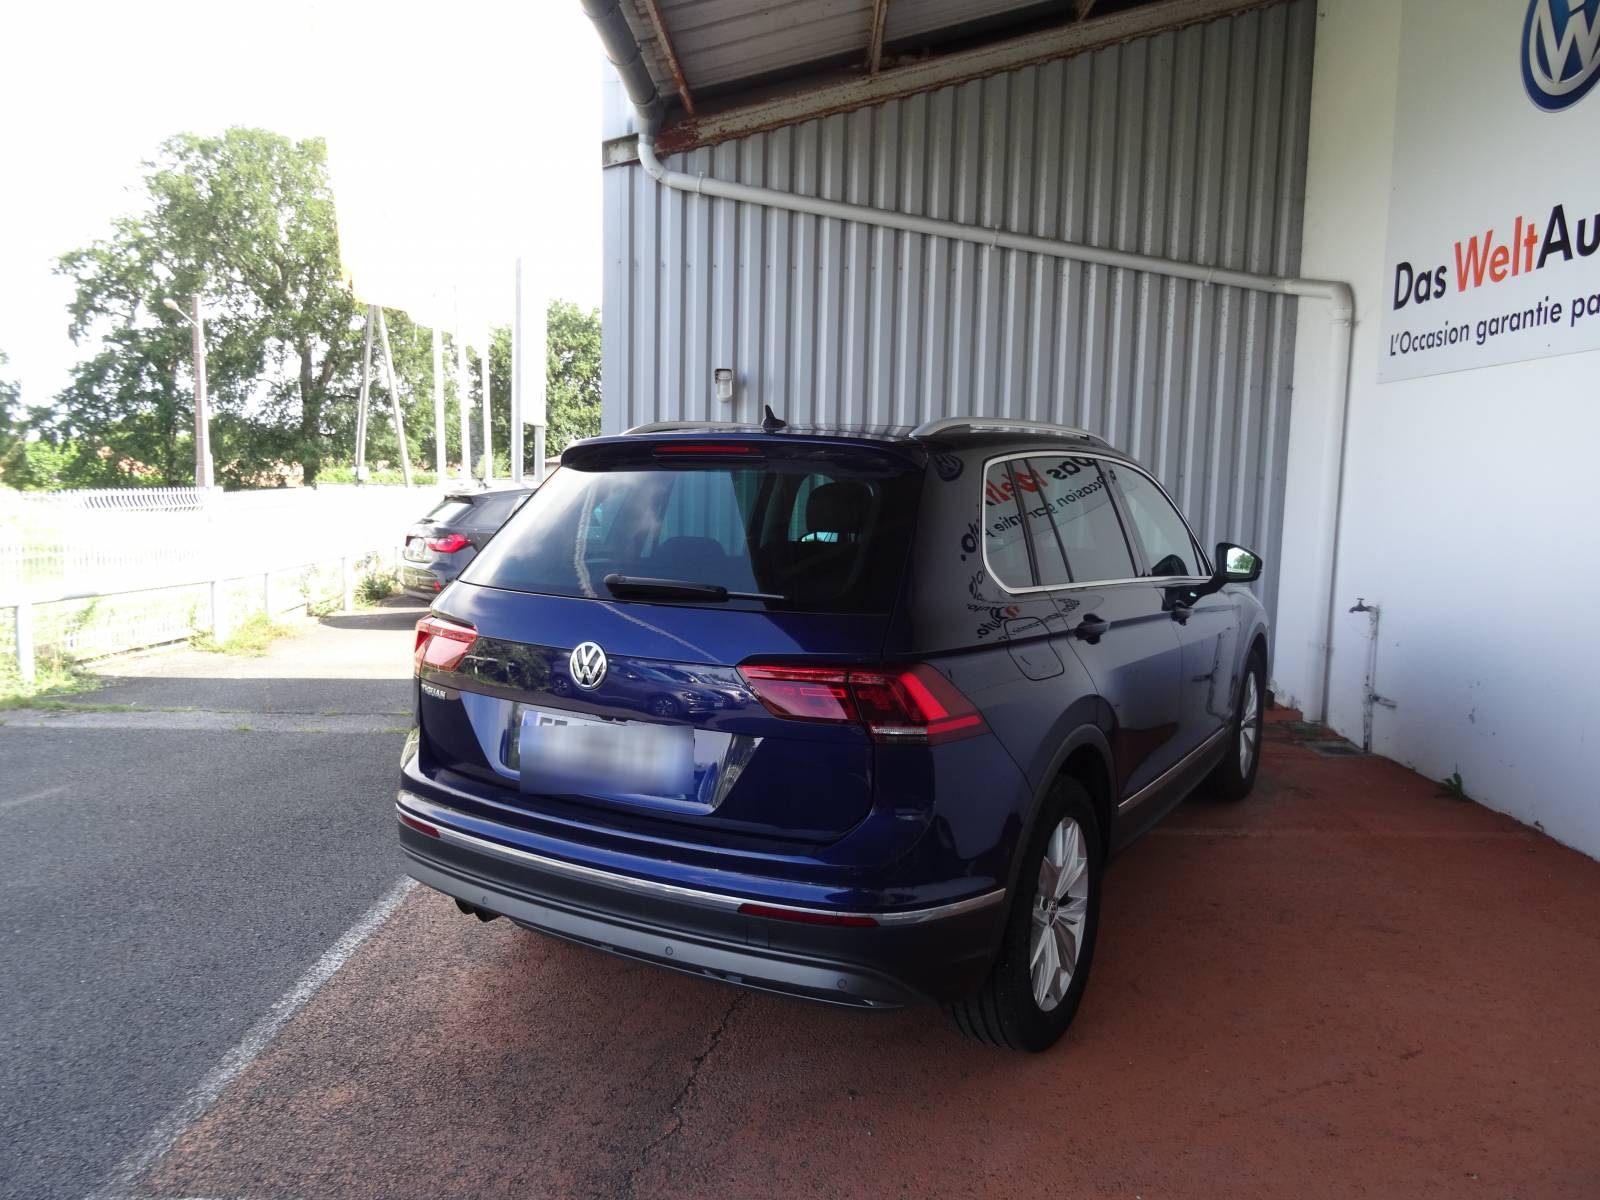 VOLKSWAGEN Tiguan 2.0 TDI 150 DSG7 - véhicule d'occasion - Site Internet Faurie - Volkswagen - Faurie Axess Sud Ouest Dax - 40180 - Narrosse - 11